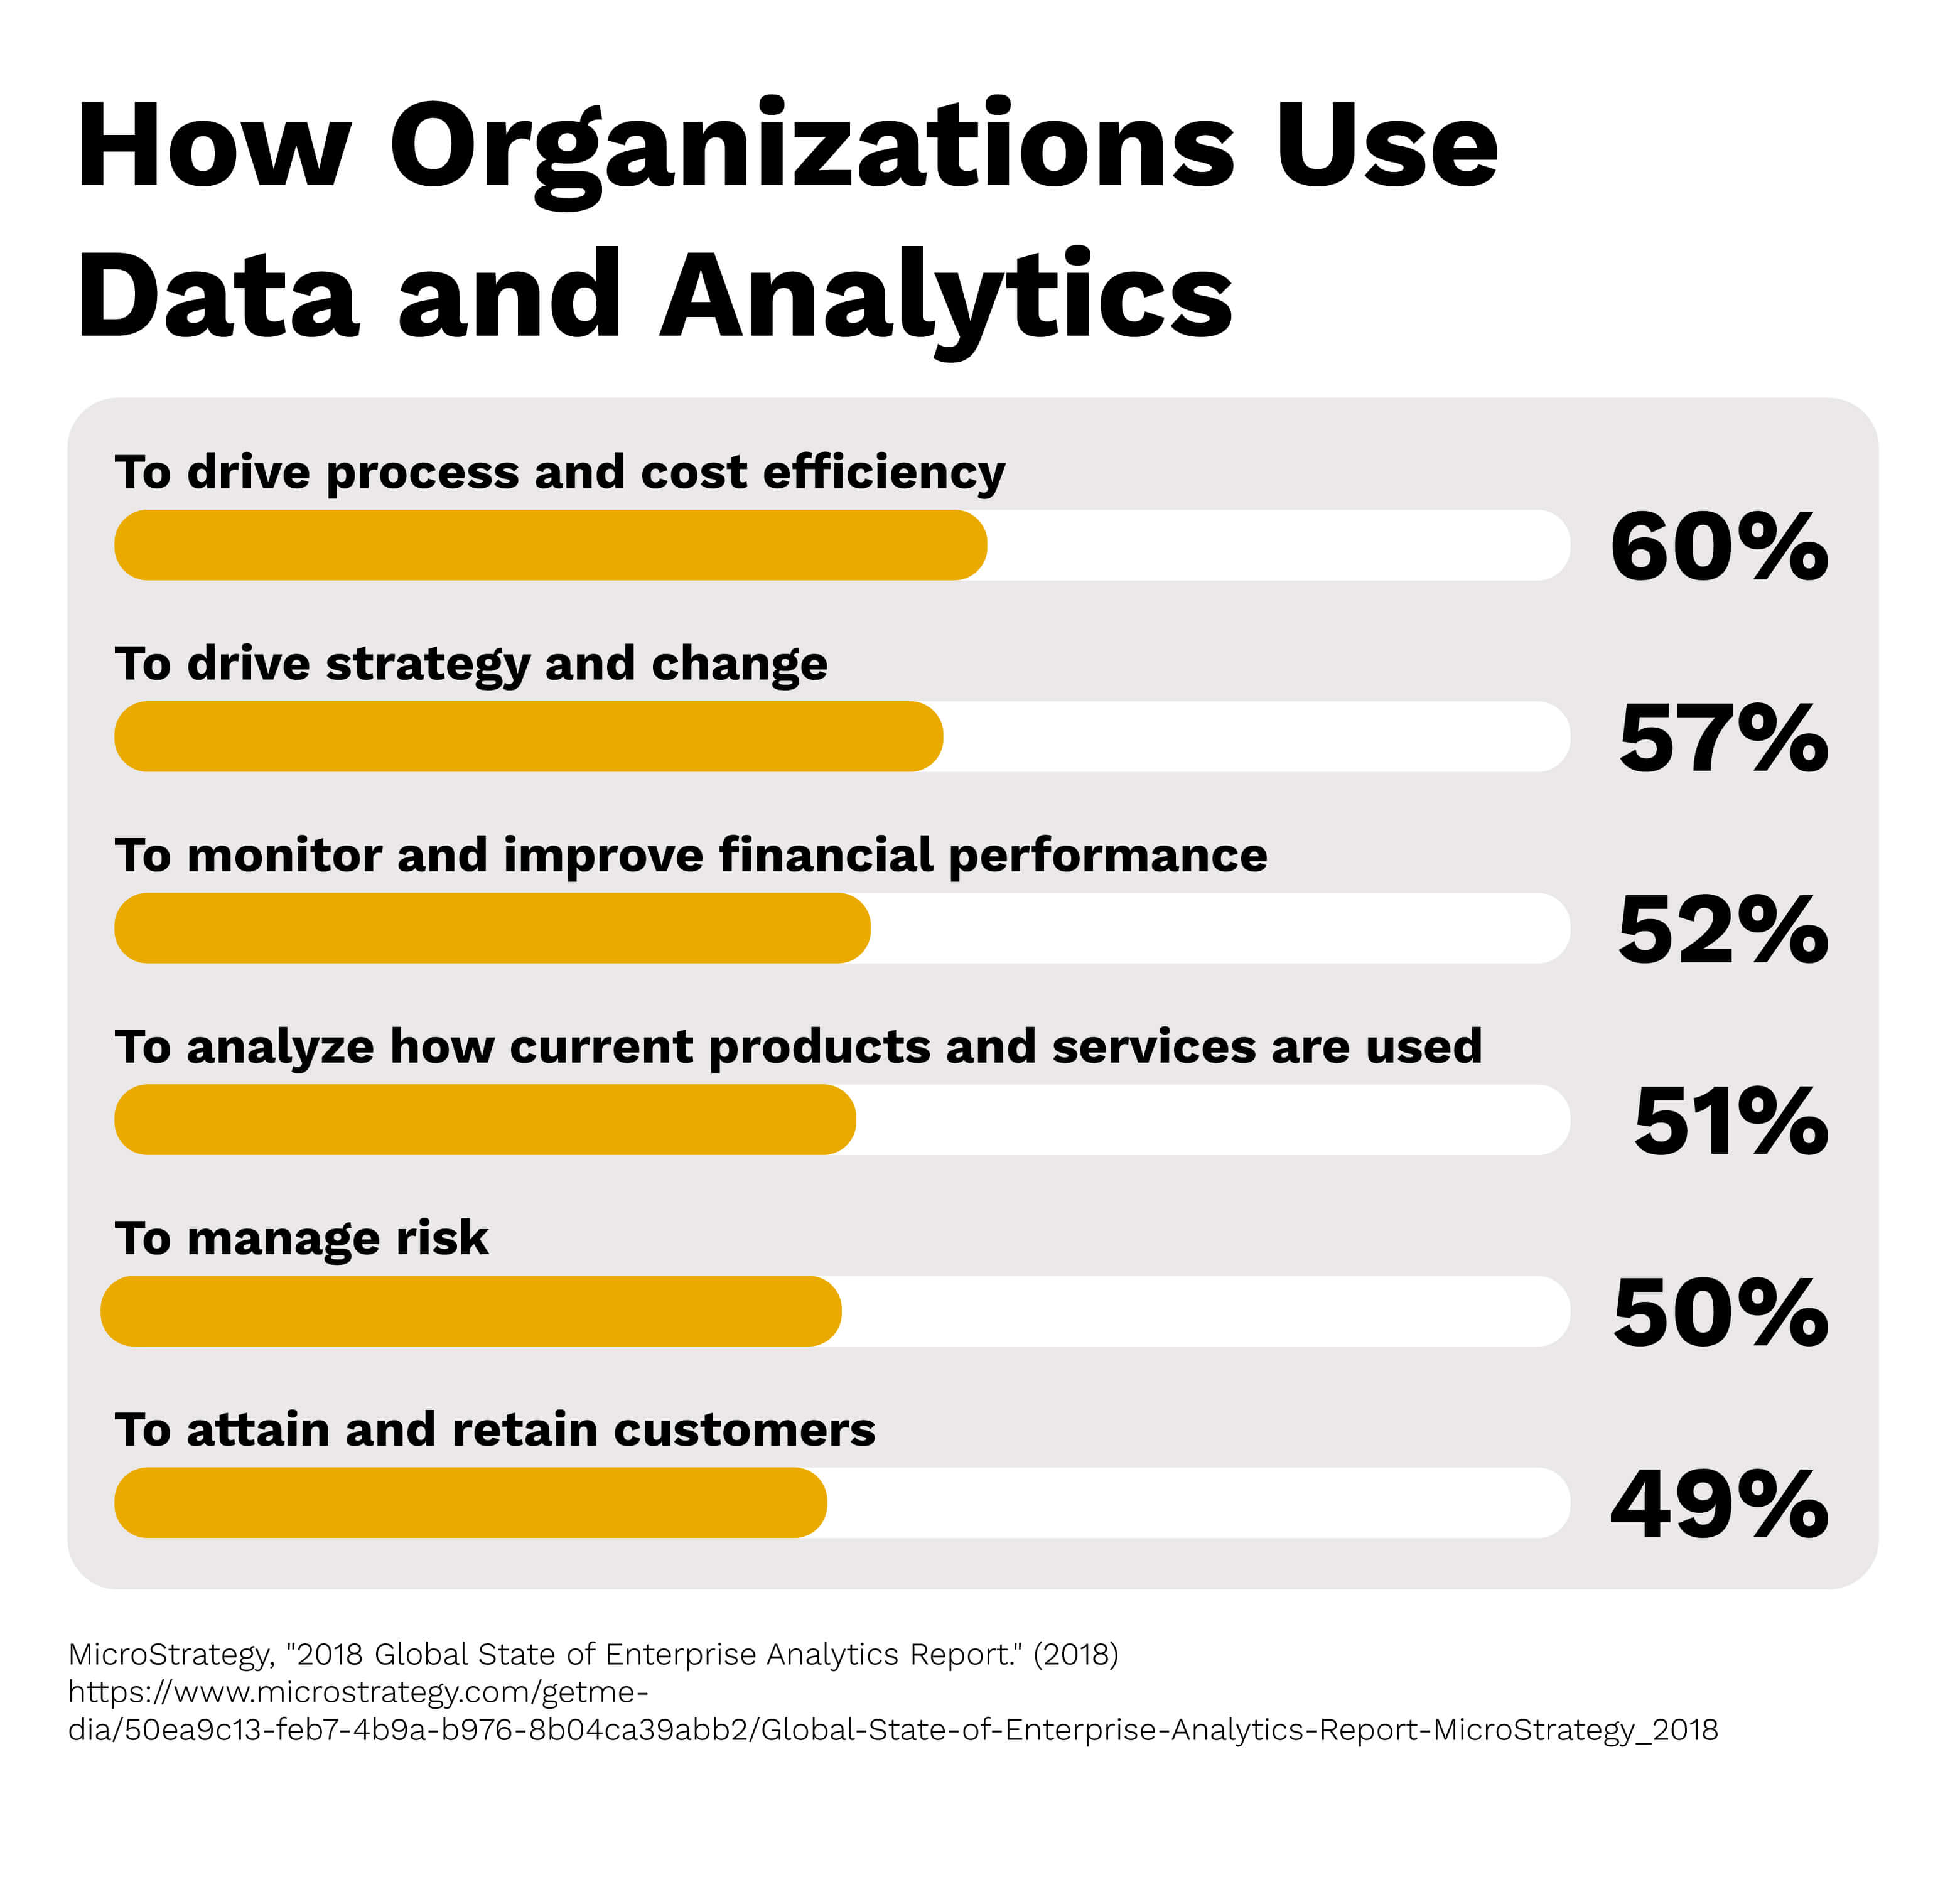 A chart showing how organizations use data analytics